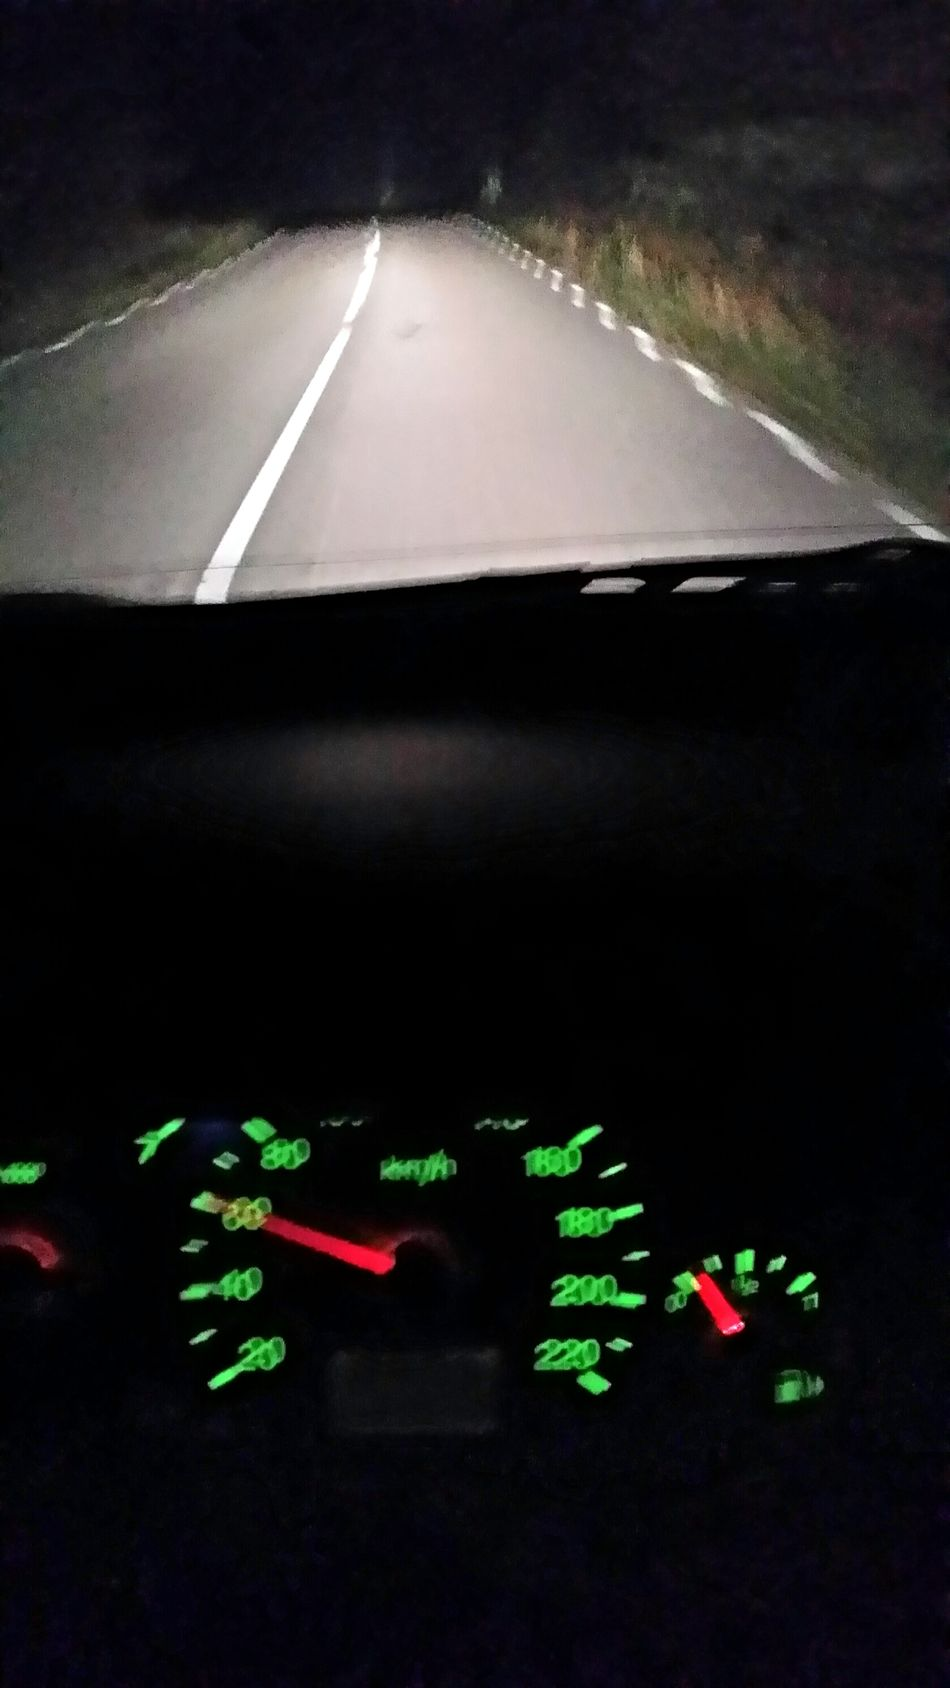 Nightdriving